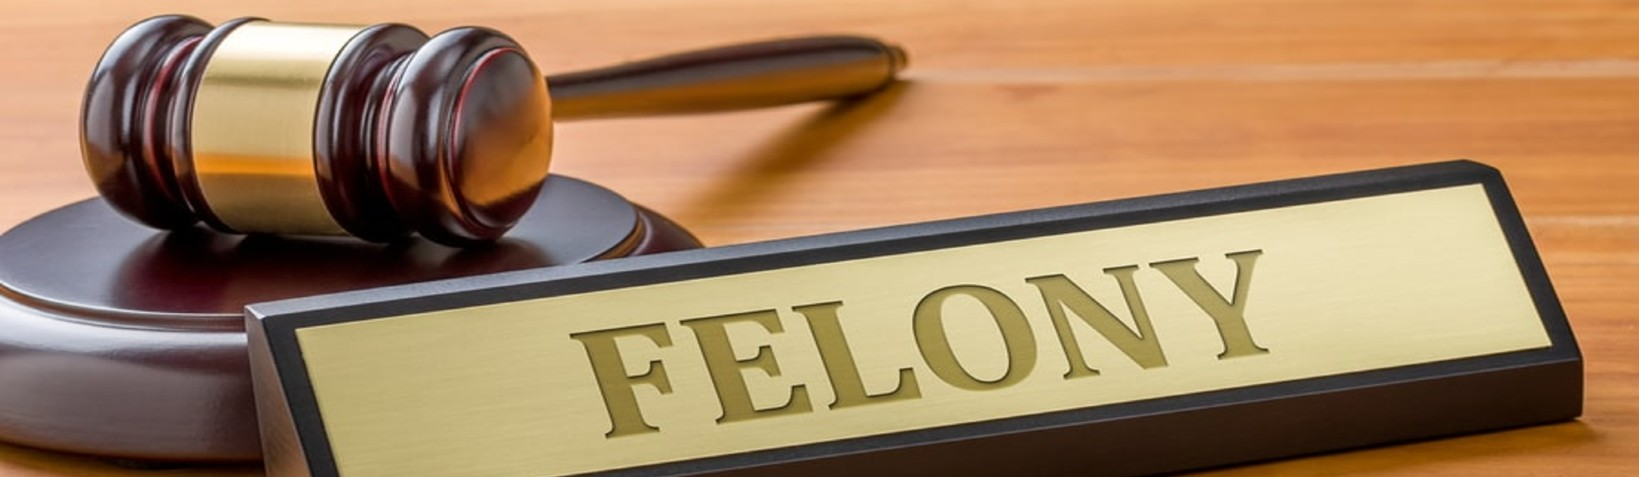 <b>Felony: </b><br>Crime that carries a sentence of more than one year in jail or prison